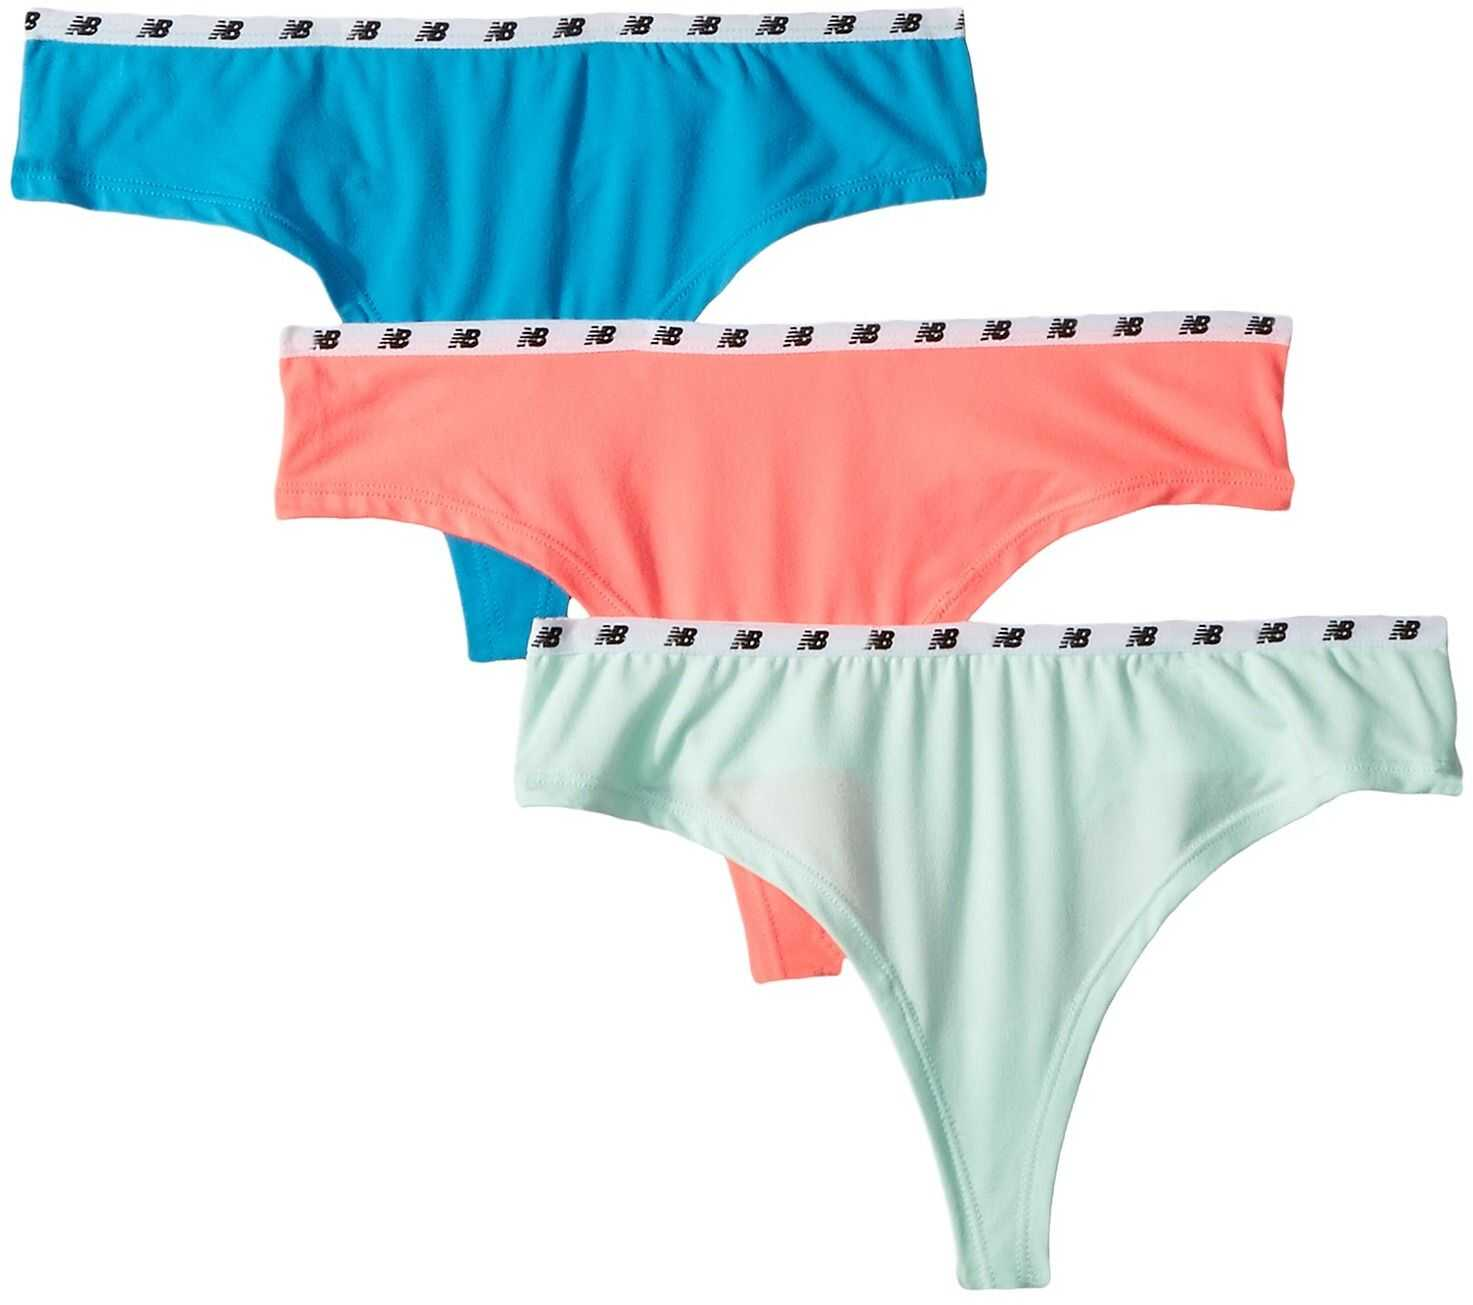 New Balance NB Everyday Collection Thong 3-Pack Guava/Seafoam/Maldives Blue